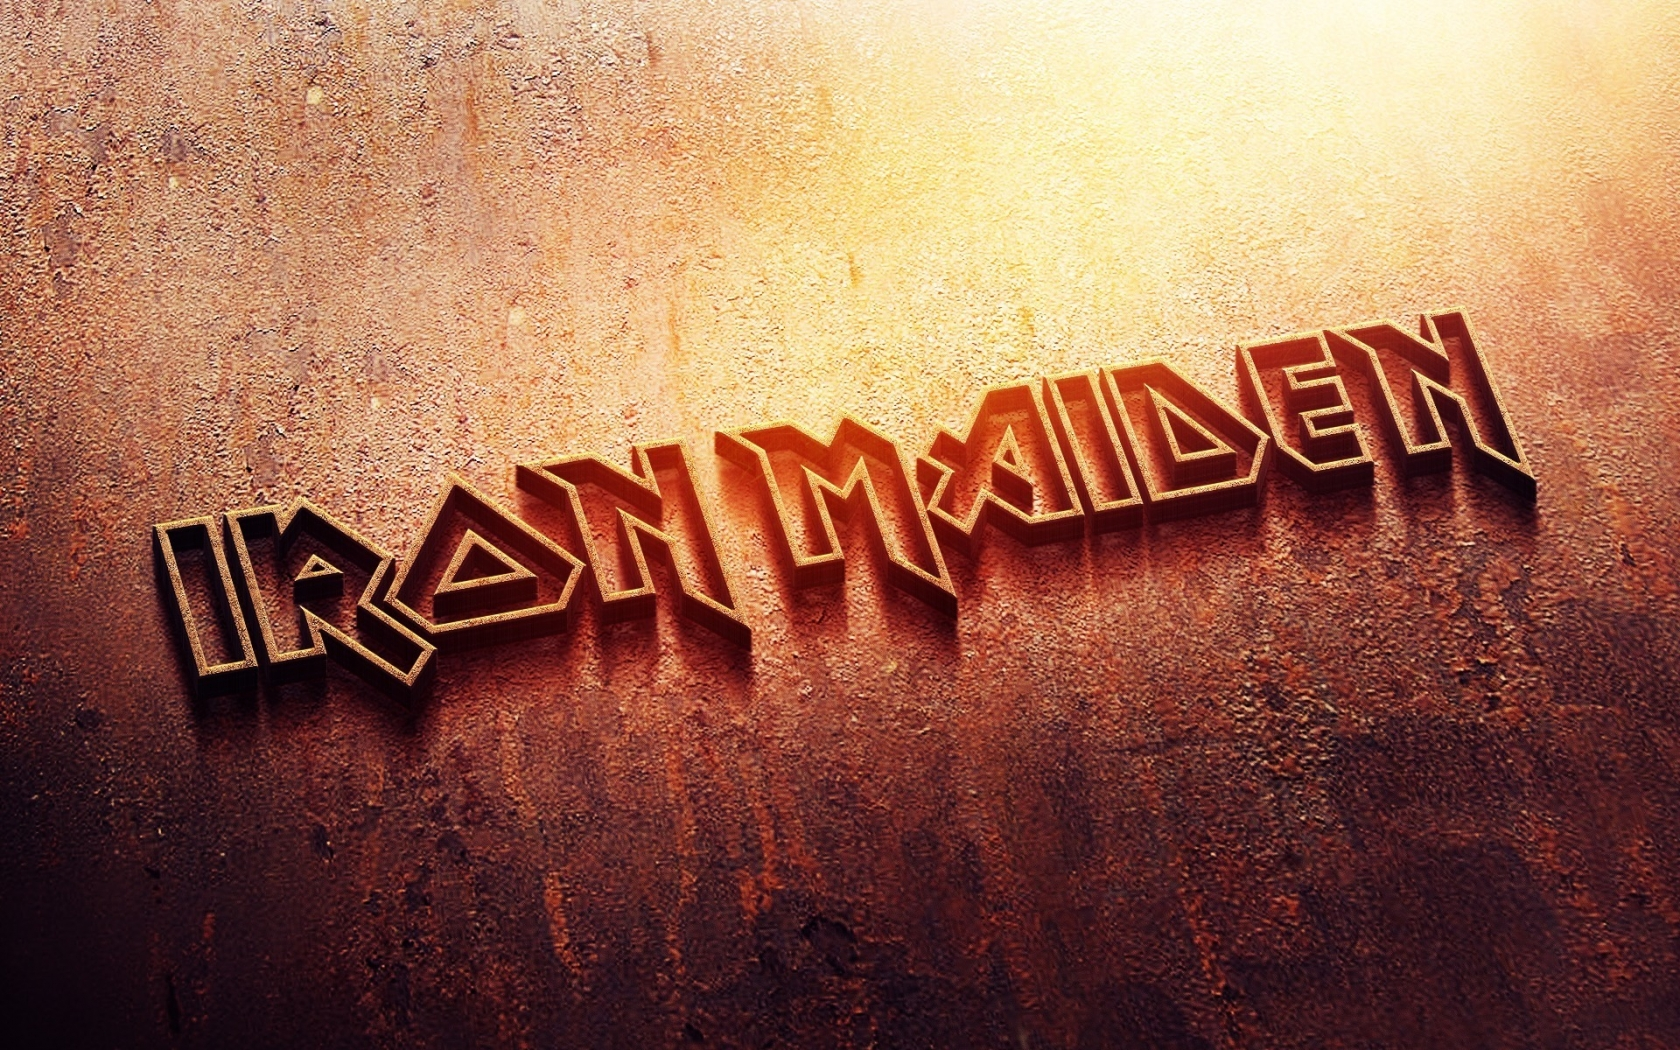 Iron Maiden Logo for 1680 x 1050 widescreen resolution